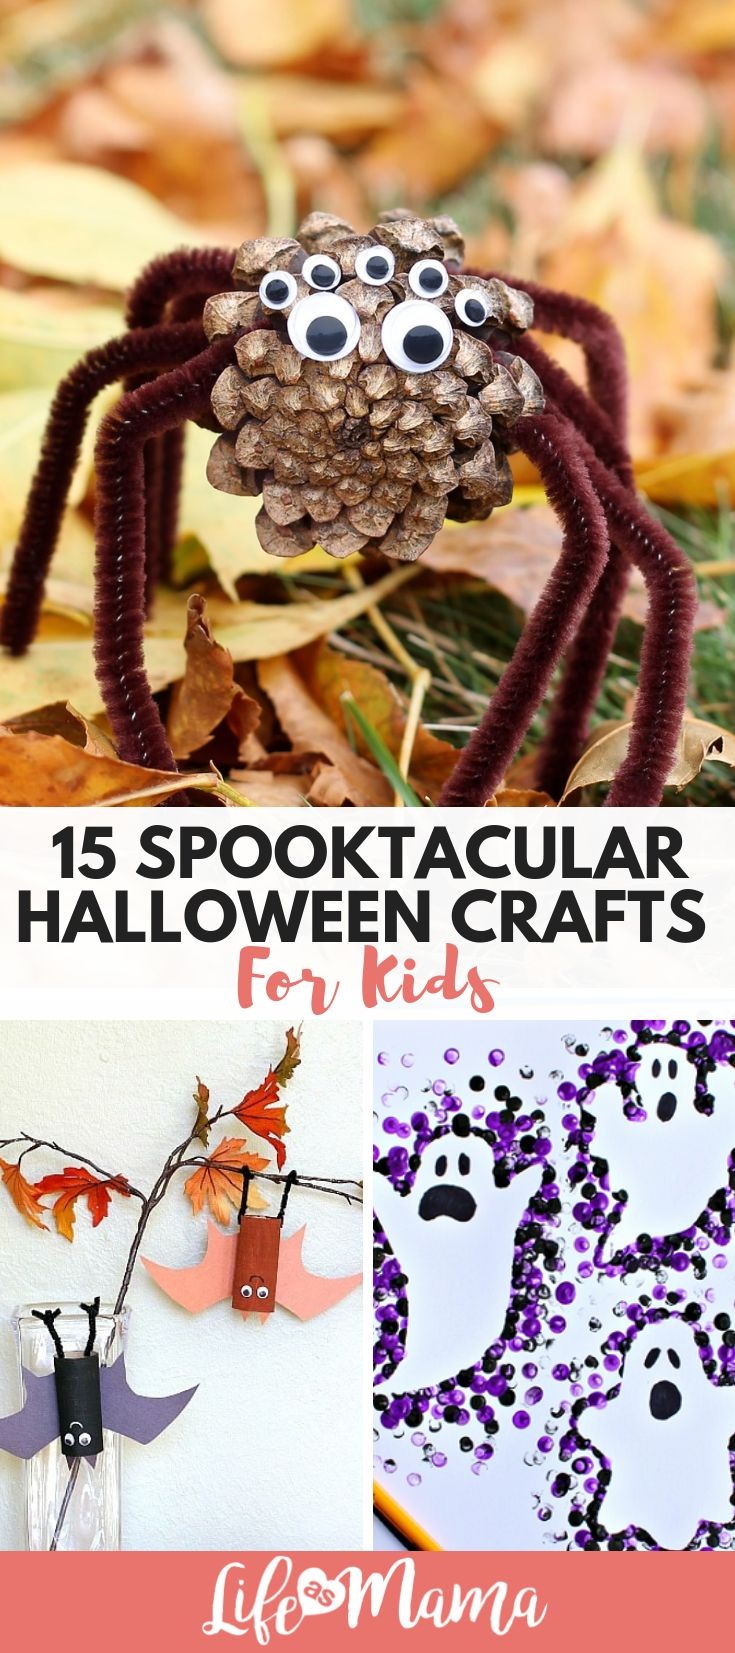 DIY Craft: 15 Spooktacular Halloween Crafts For Kids <a class=